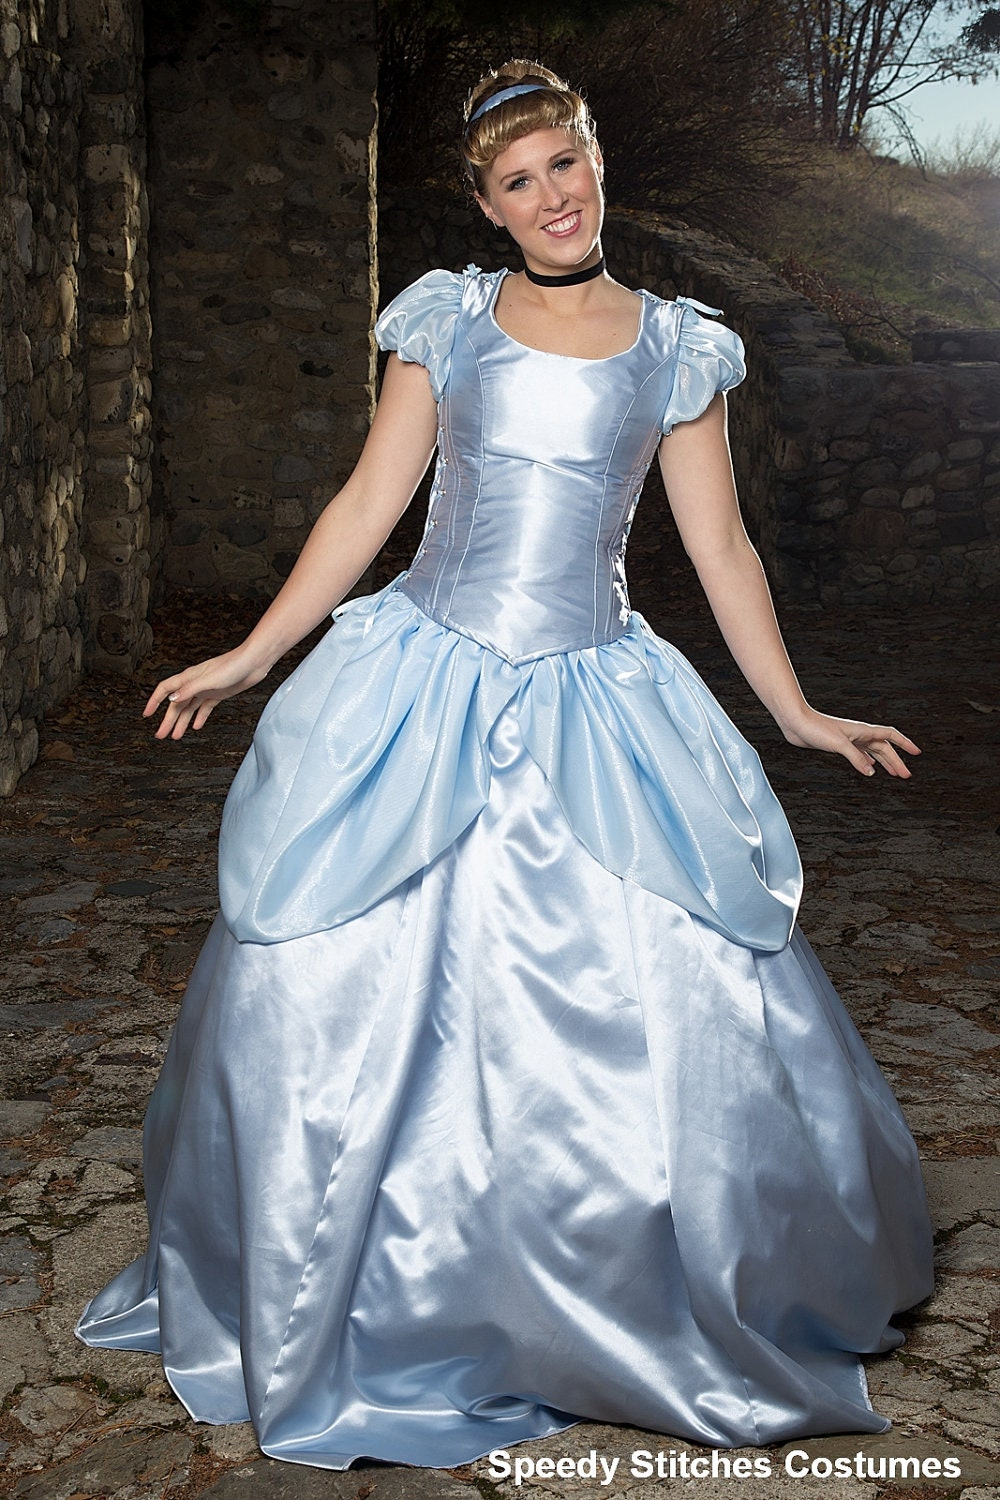 Cinderella Costume Adjustable and Washable Adult Cinderella